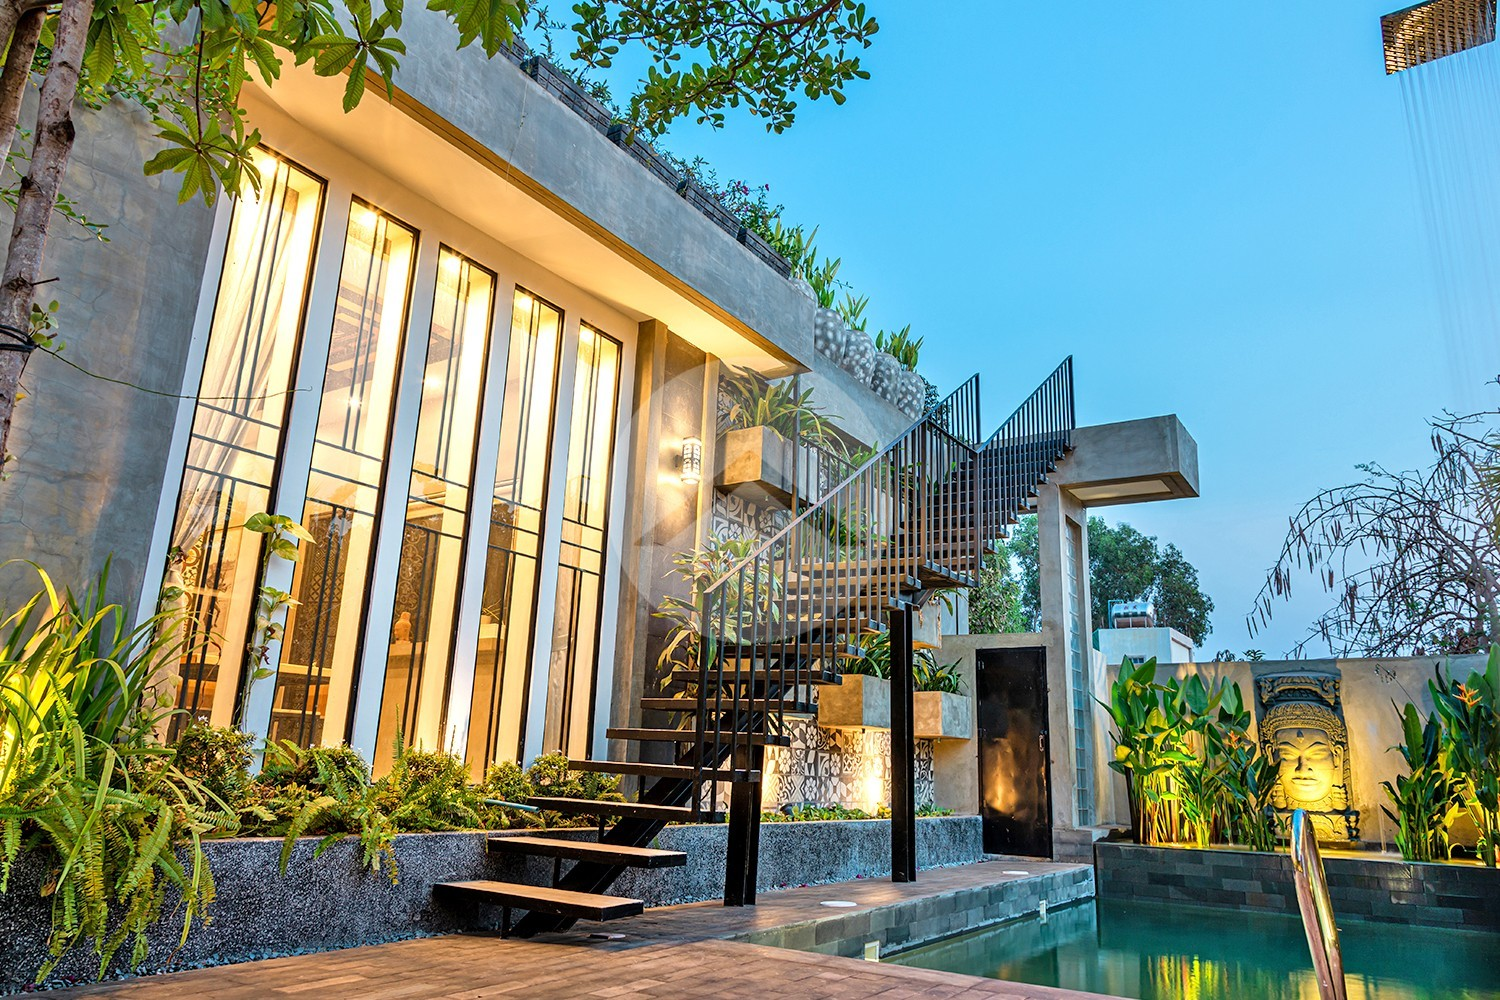 FOR SALE Veayo Luxury Apartments - Chreav, Siem Reap